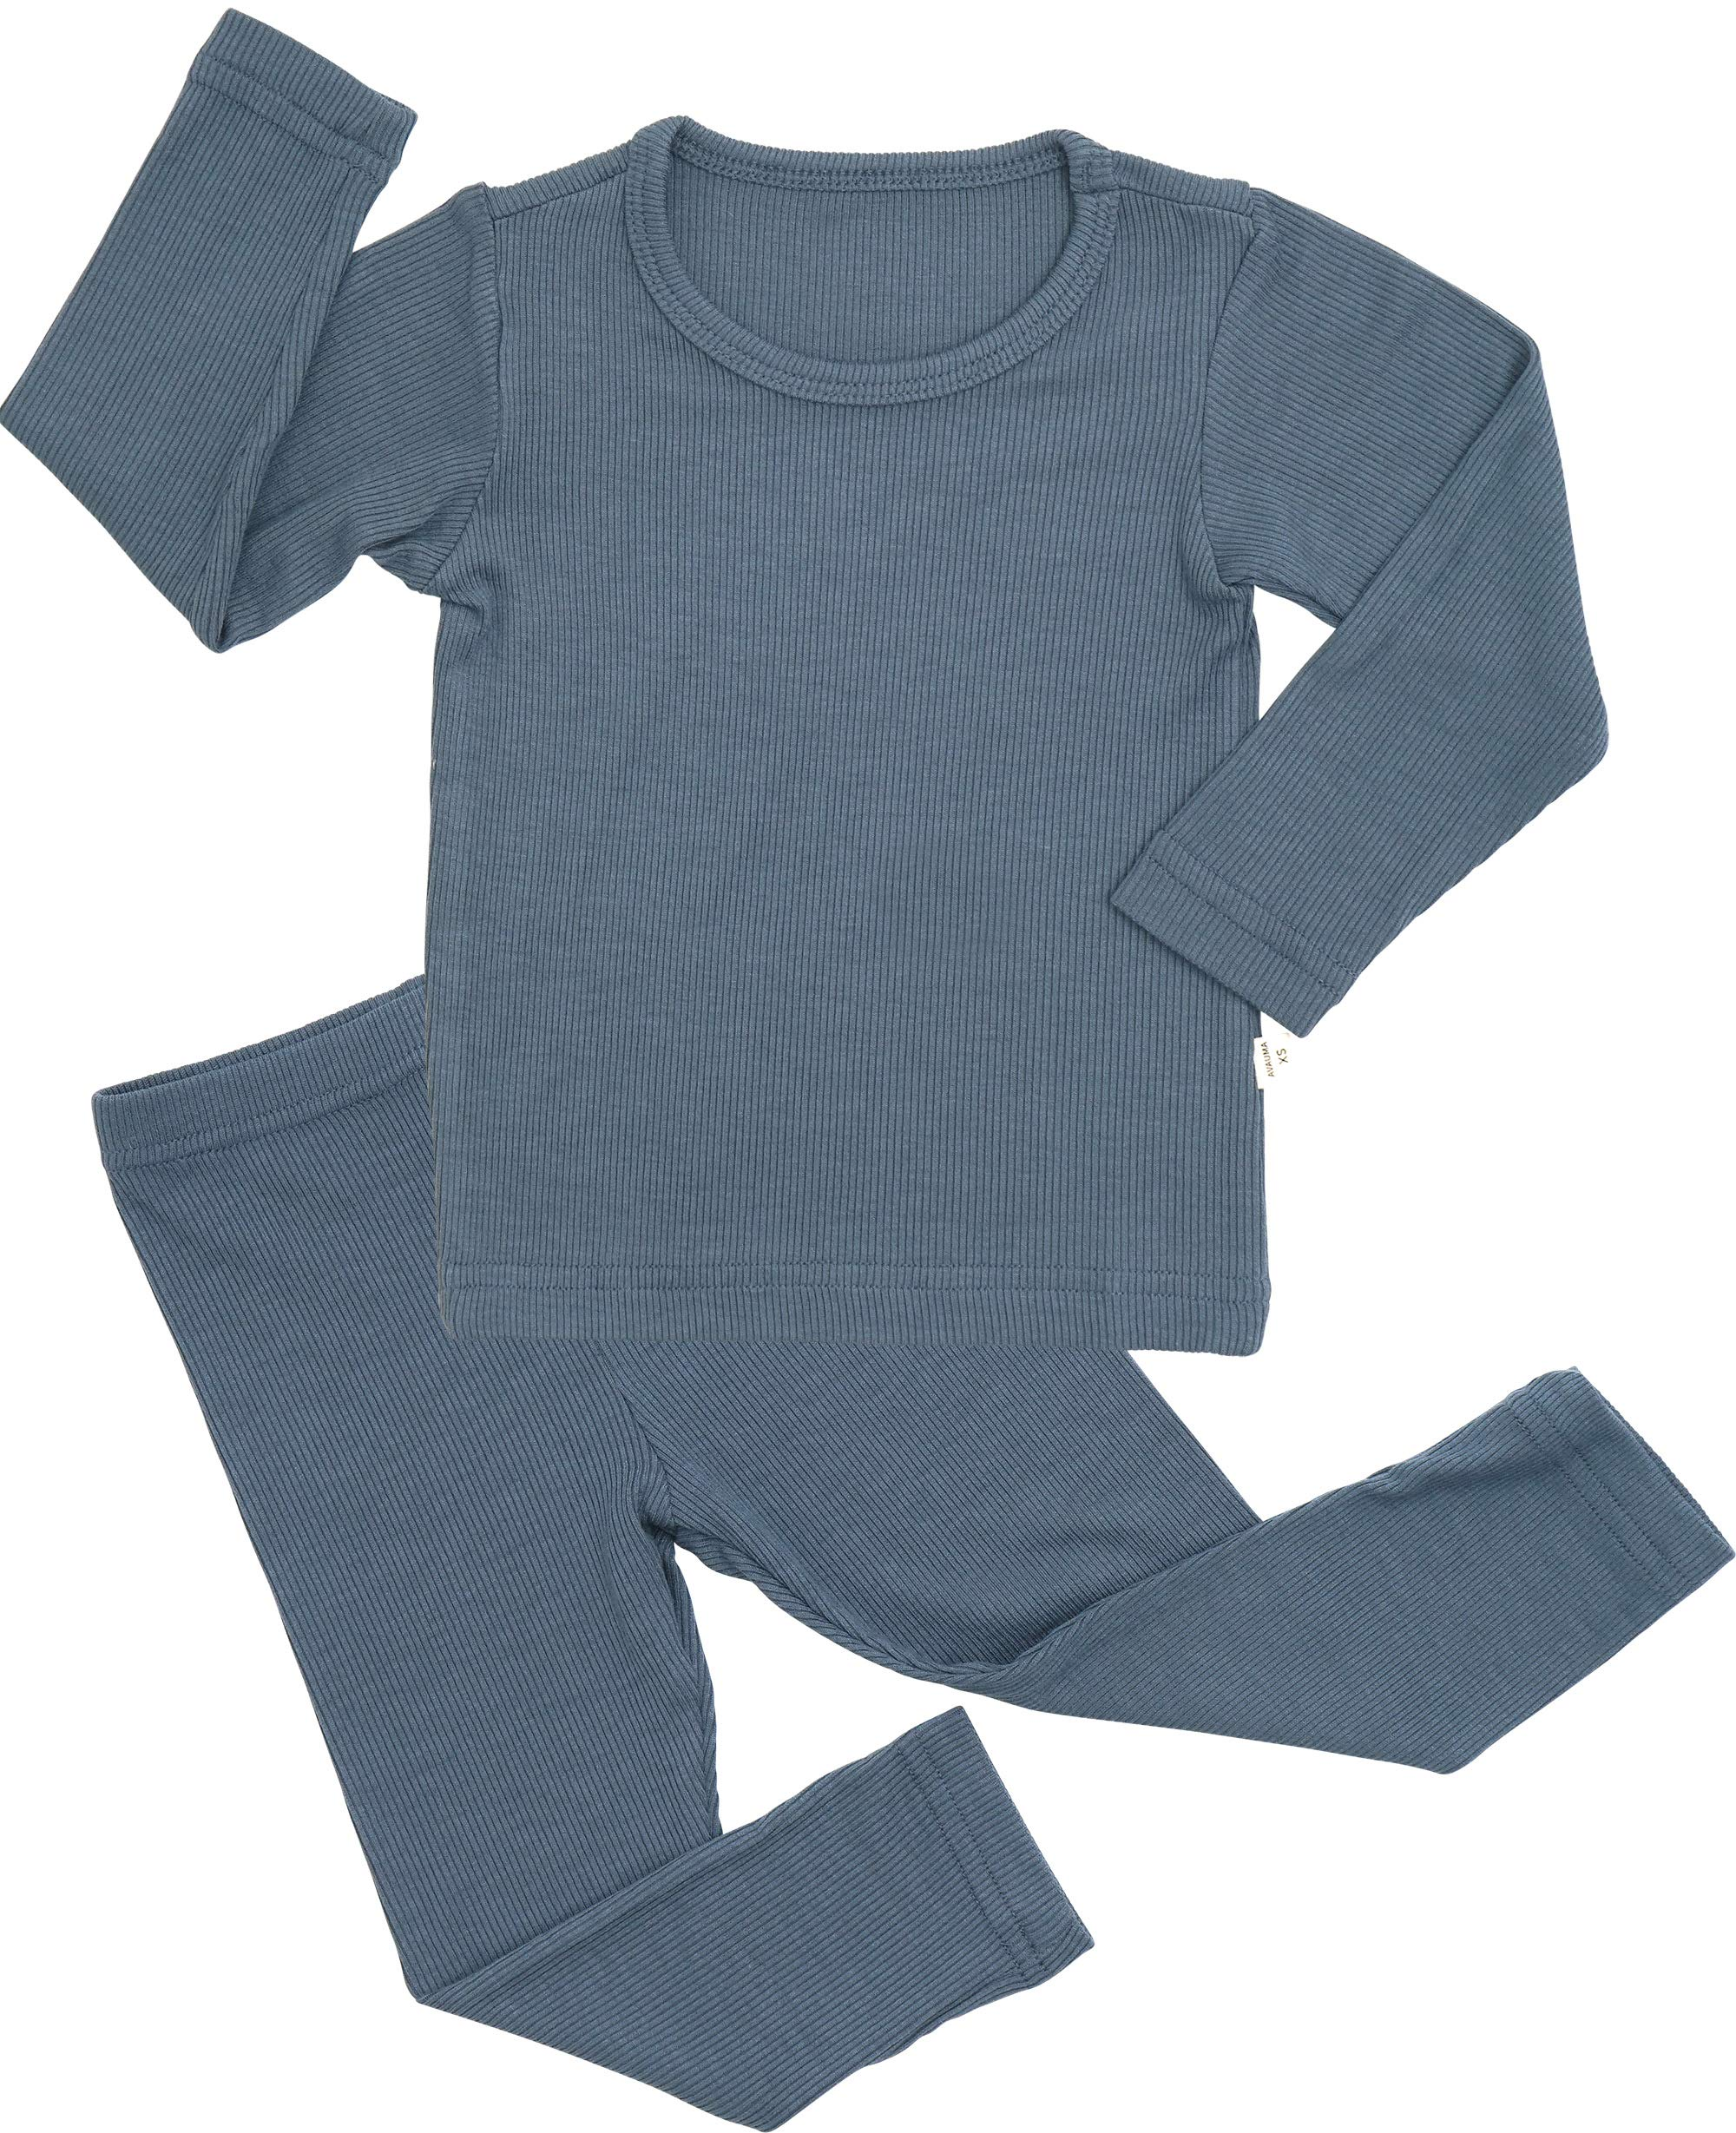 AVAUMA Baby Boy Girl Long Sleeve Ribbed Pajamas Set Snug-Fit Fall Winter Pjs Sleepwear Kids Toddler (M/Blue) by AVAUMA